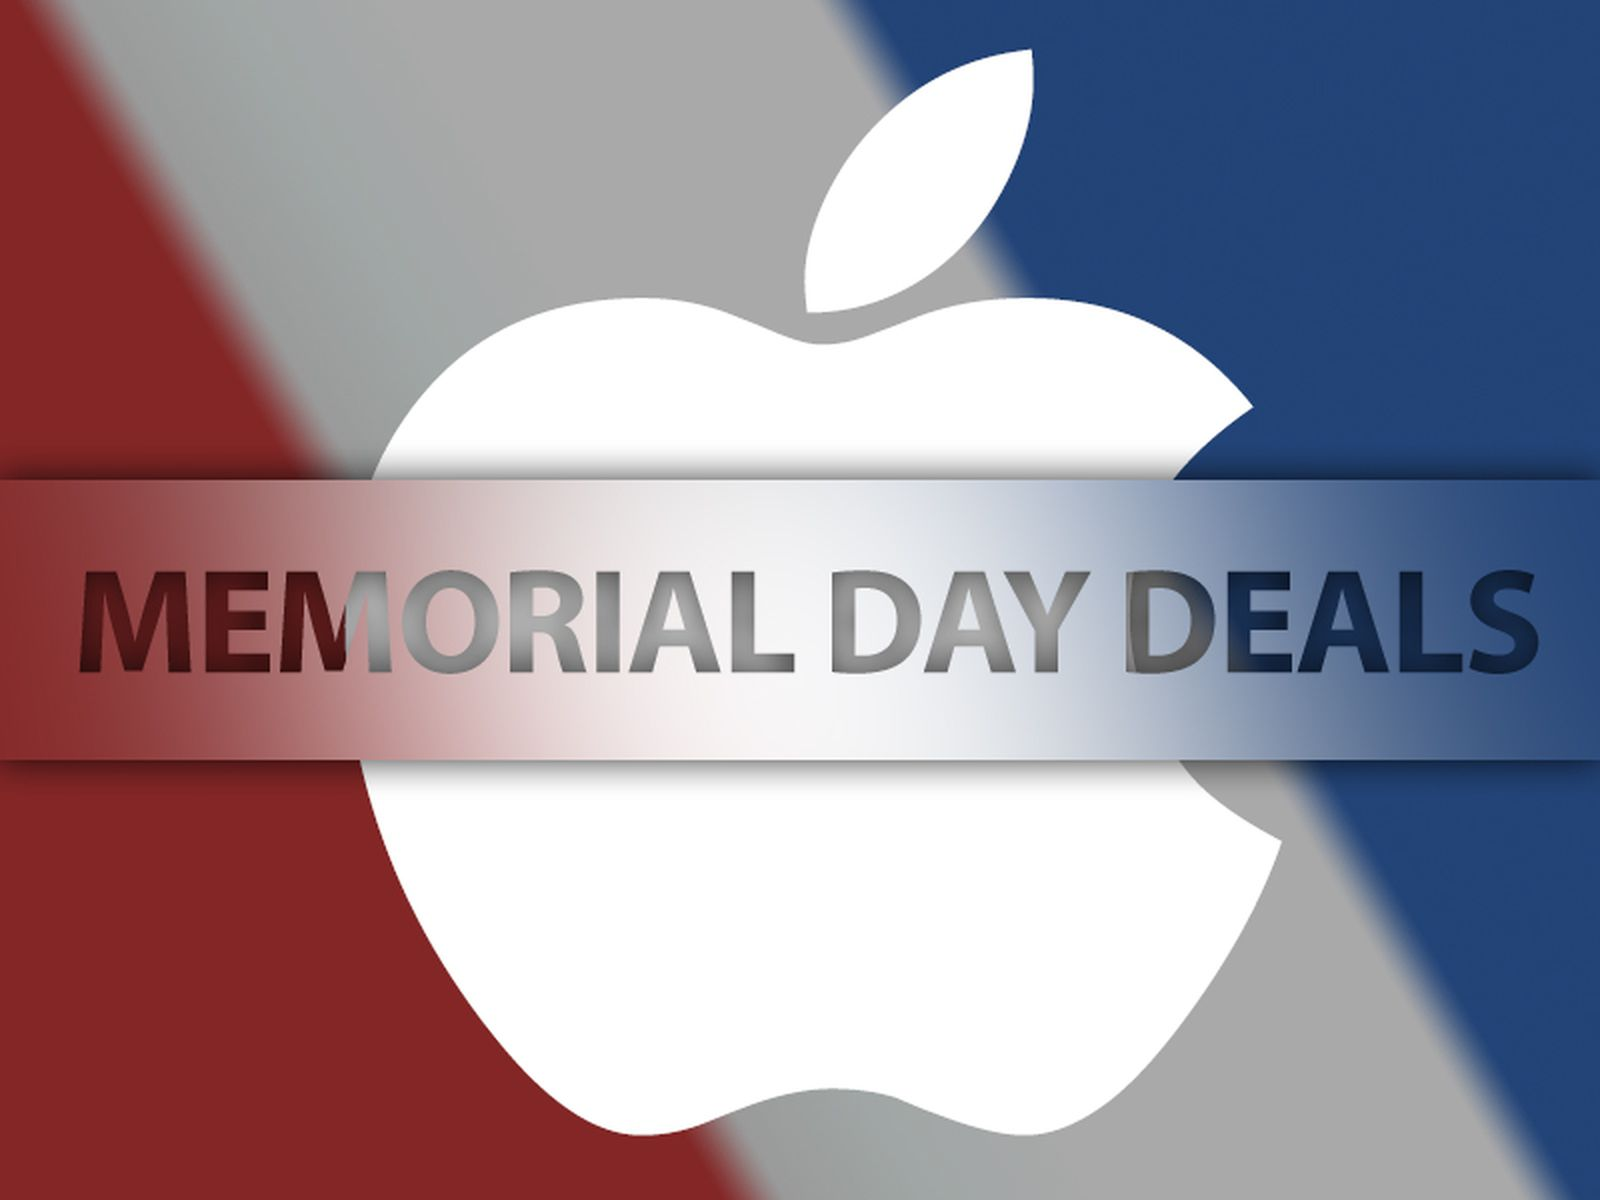 Memorial Day Deals Save On Apple Devices And Accessories From Twelve South Mophie Best Buy And More Macrumors